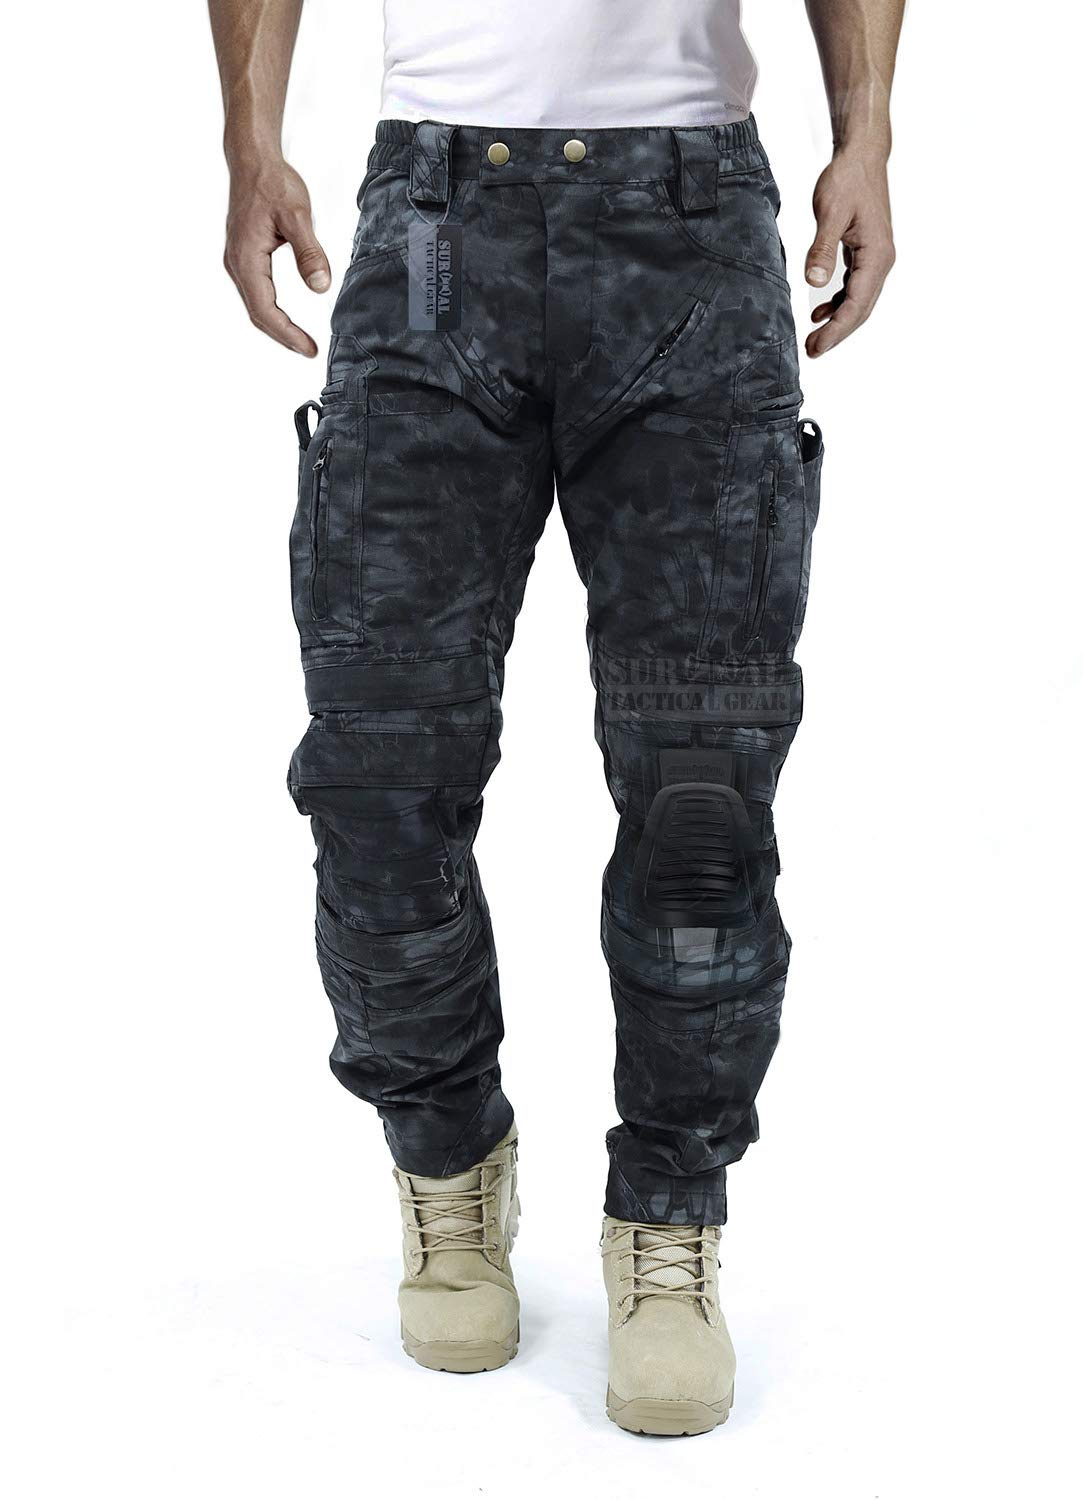 Survival Tactical Gear Men's Airsoft Wargame Tactical Pants with Knee Protection System & Air Circulation System (Typhon Pattern, L) by Survival Tactical Gear